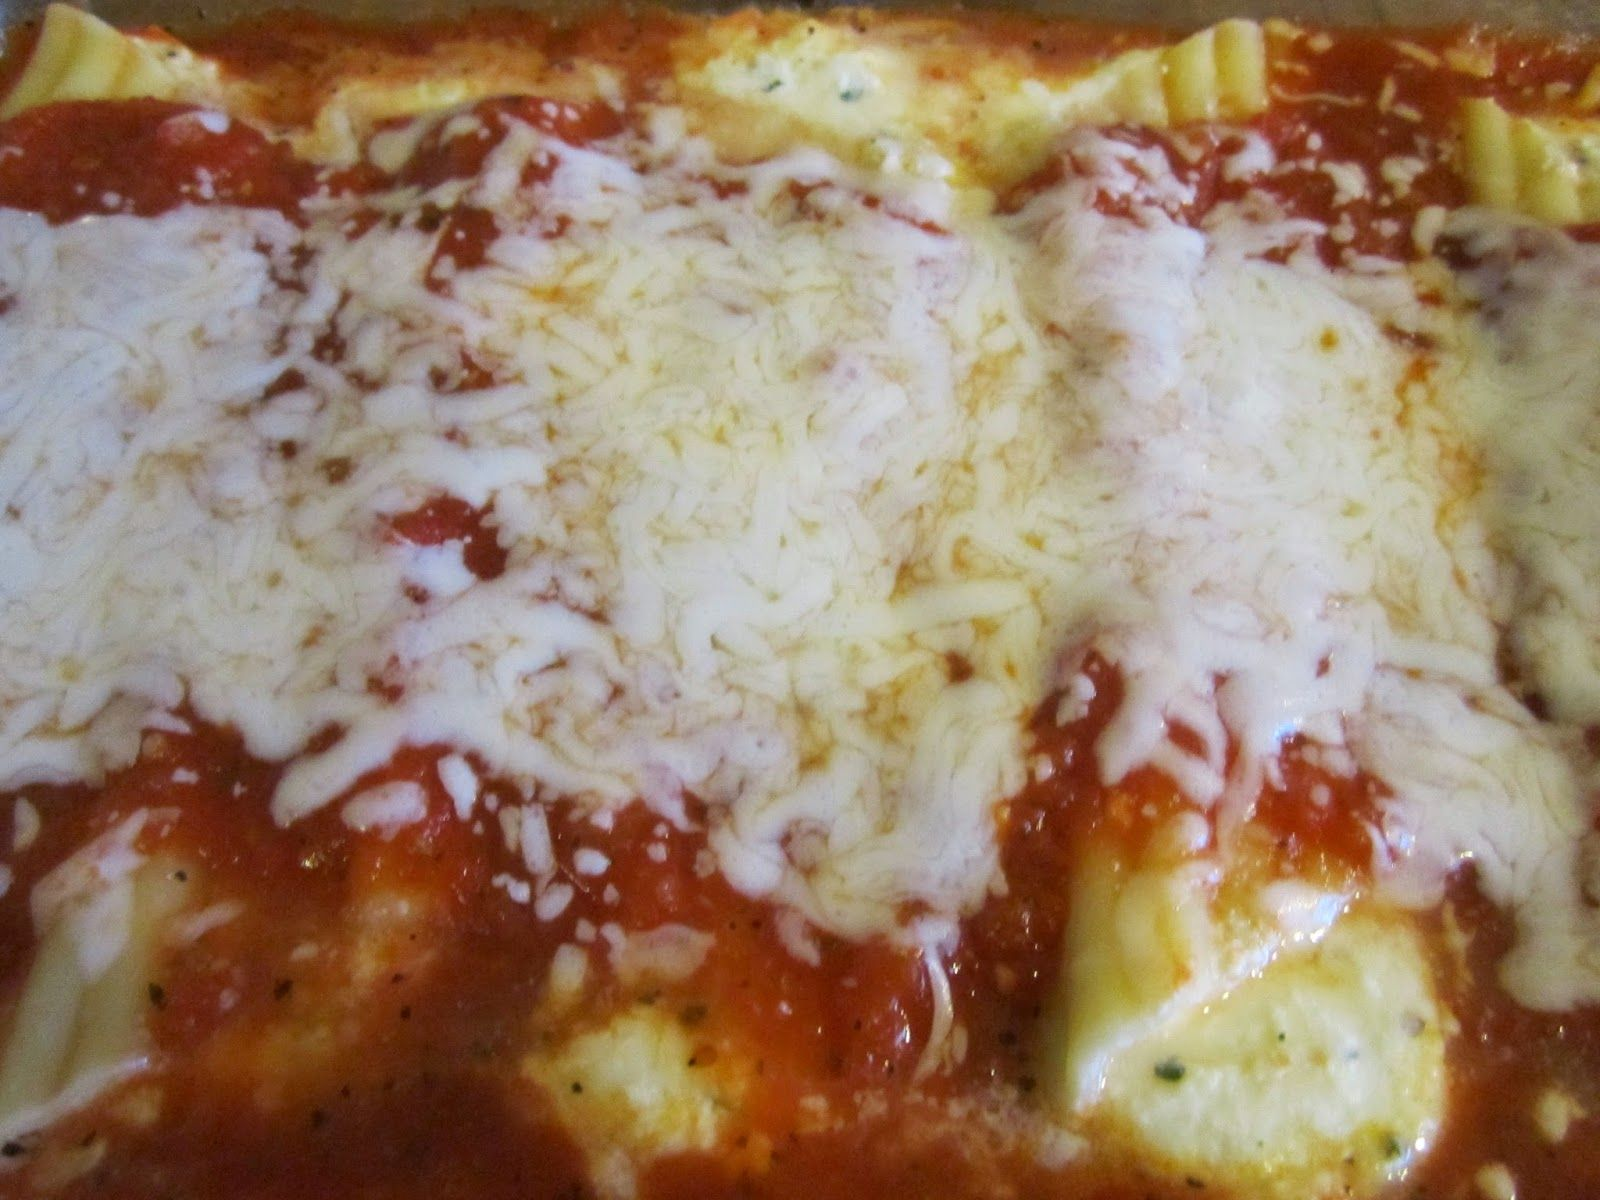 Mary's Busy Kitchen: Go Meatless One Night With This Three-Cheese Manicotti